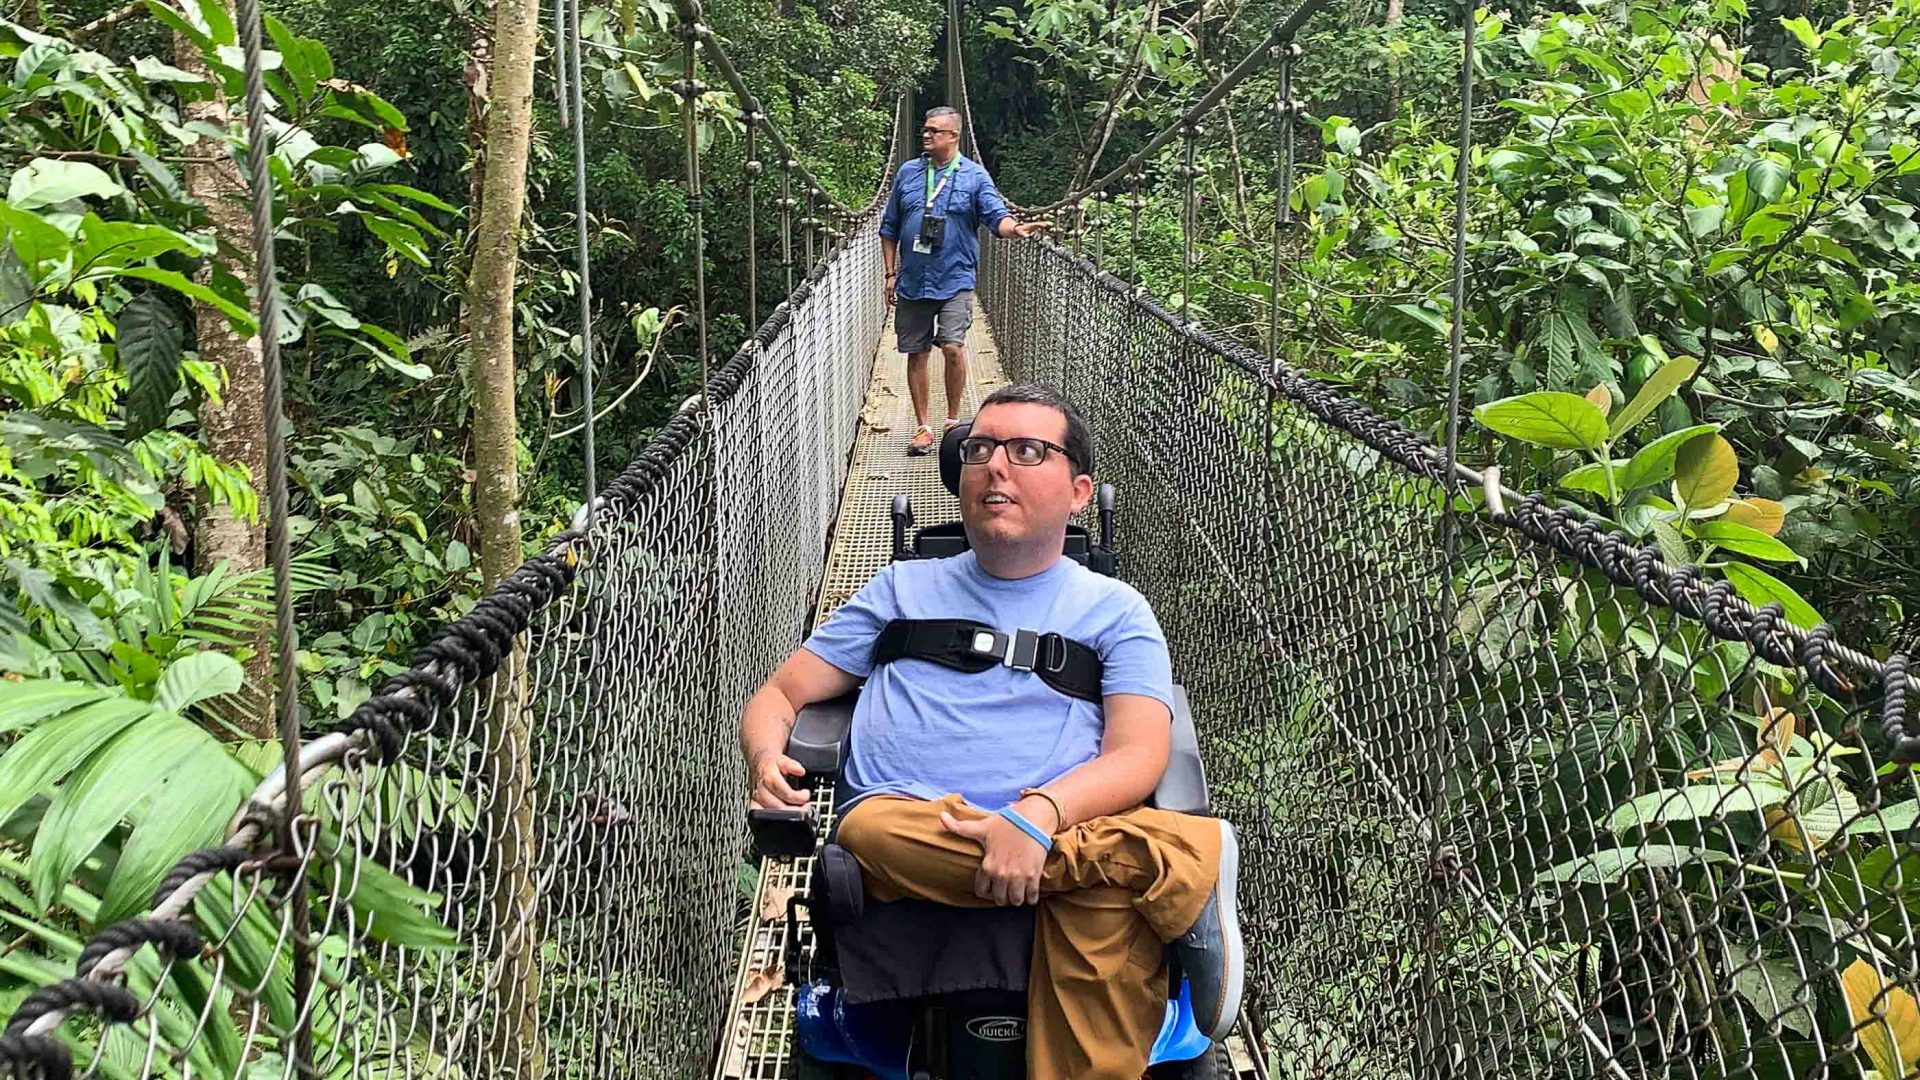 Cory Lee crossing a bridge while on his travels.